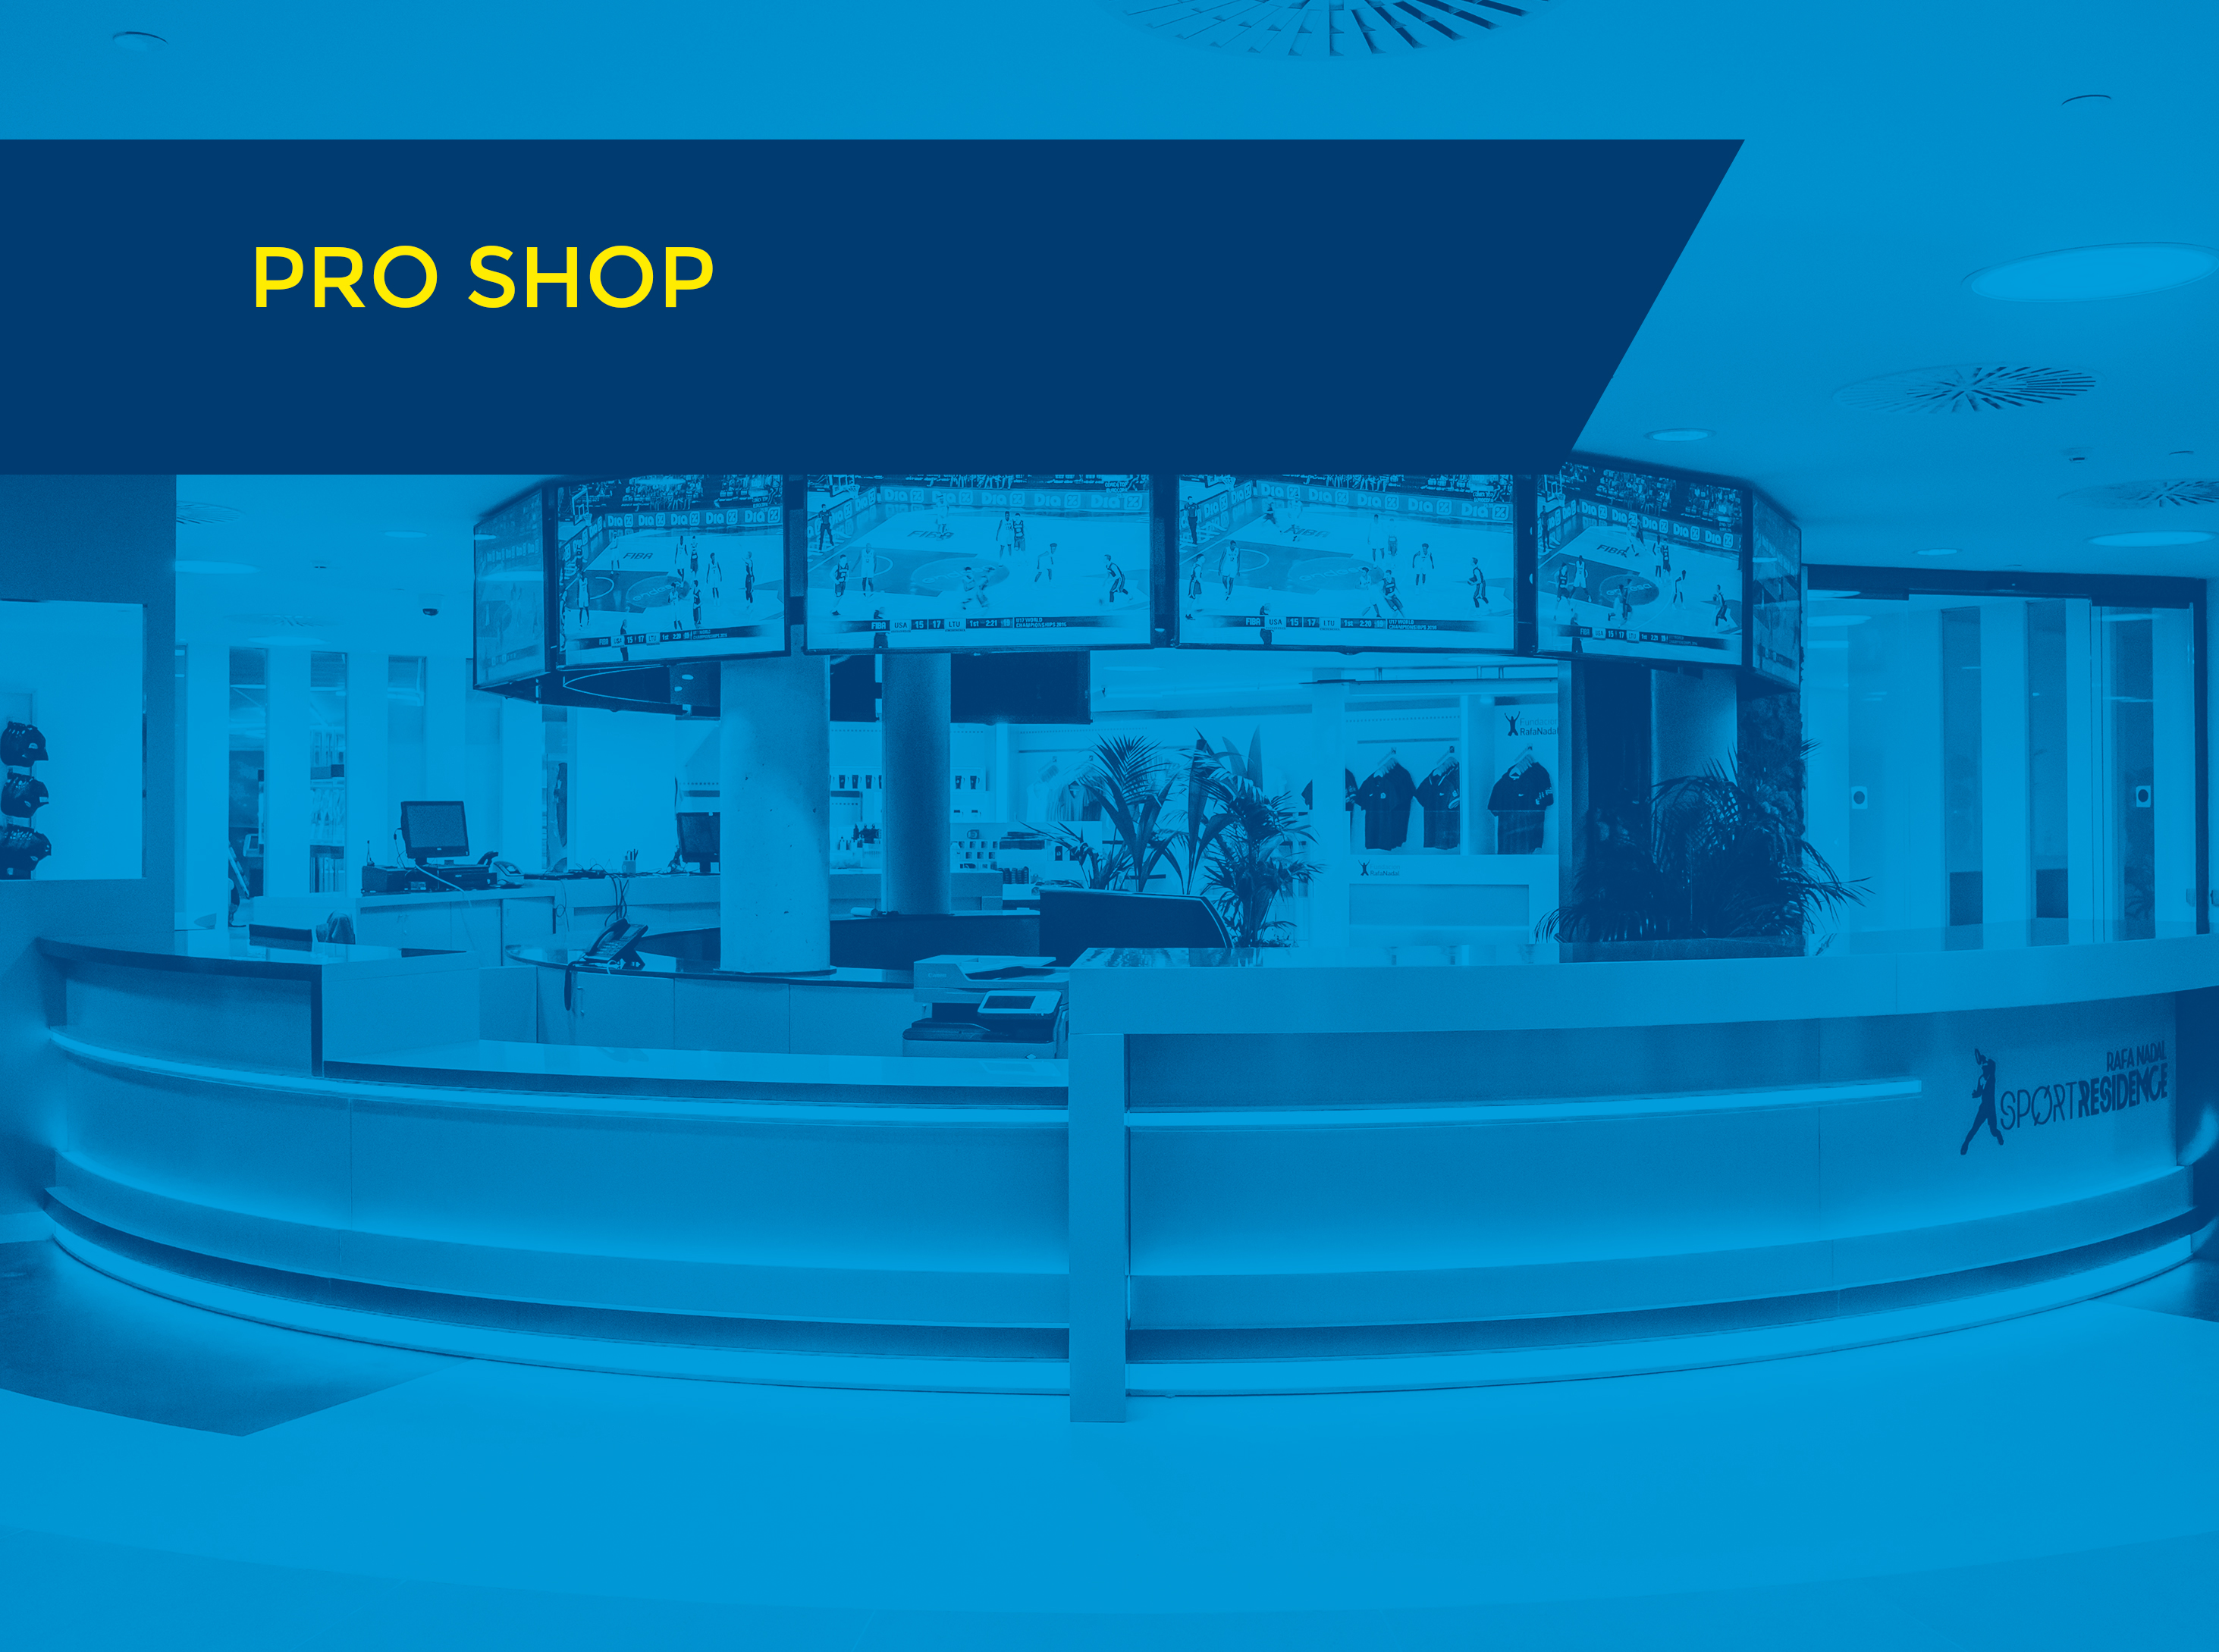 pro shop with text